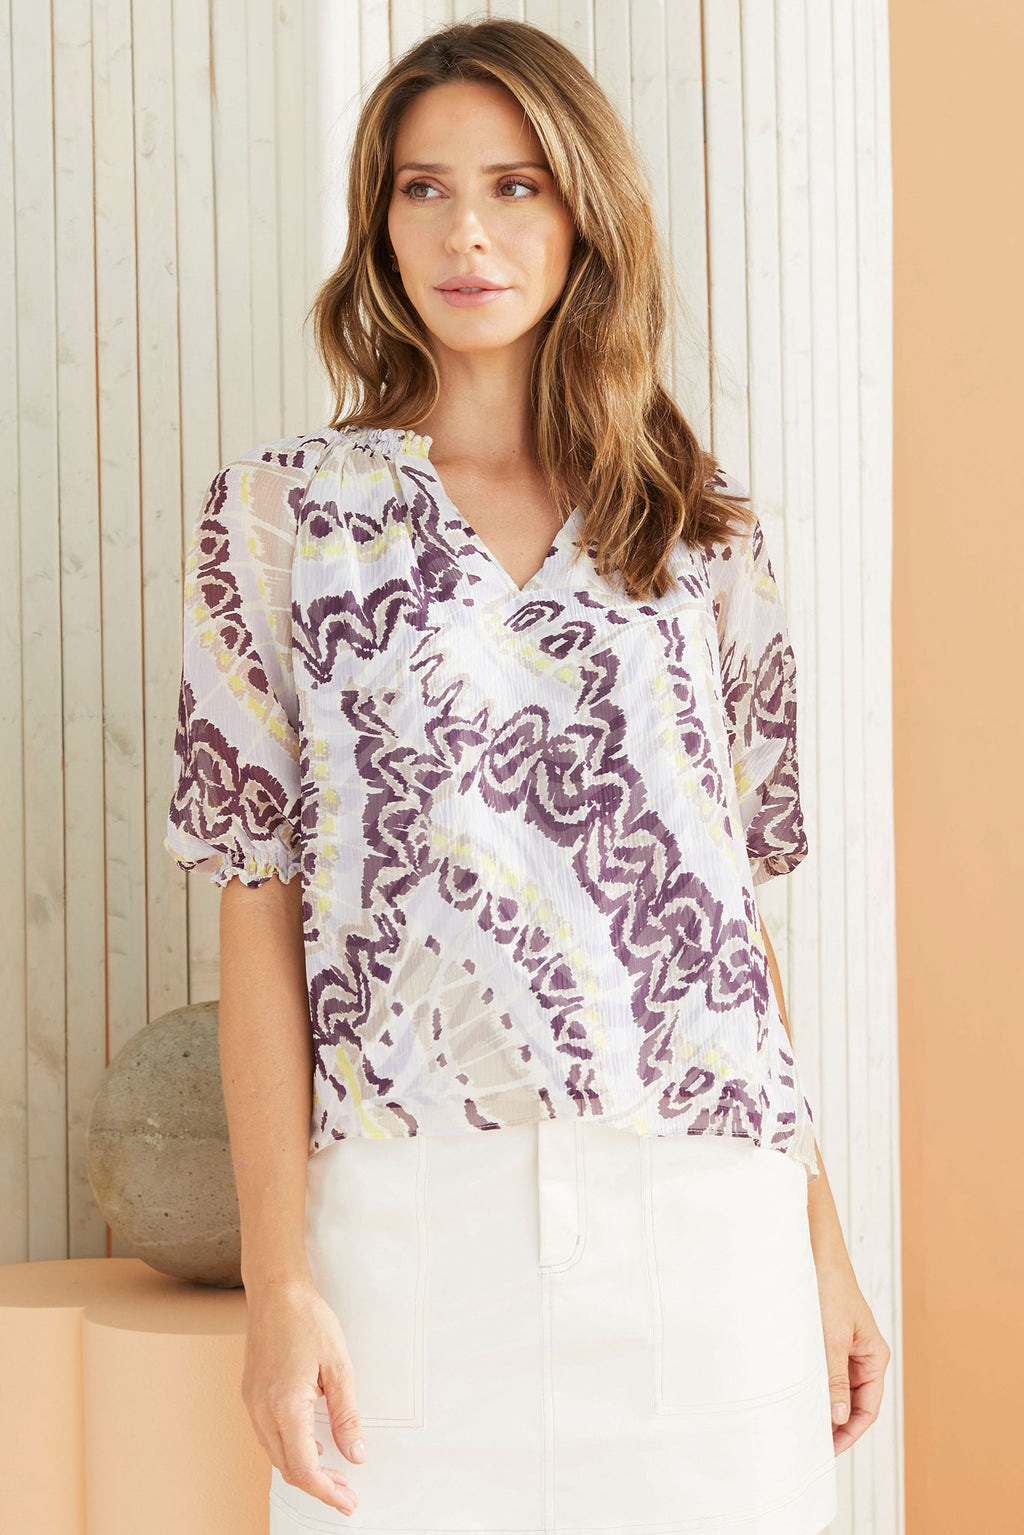 Model wearing the Kori Blouse in our Berry Butterfly print